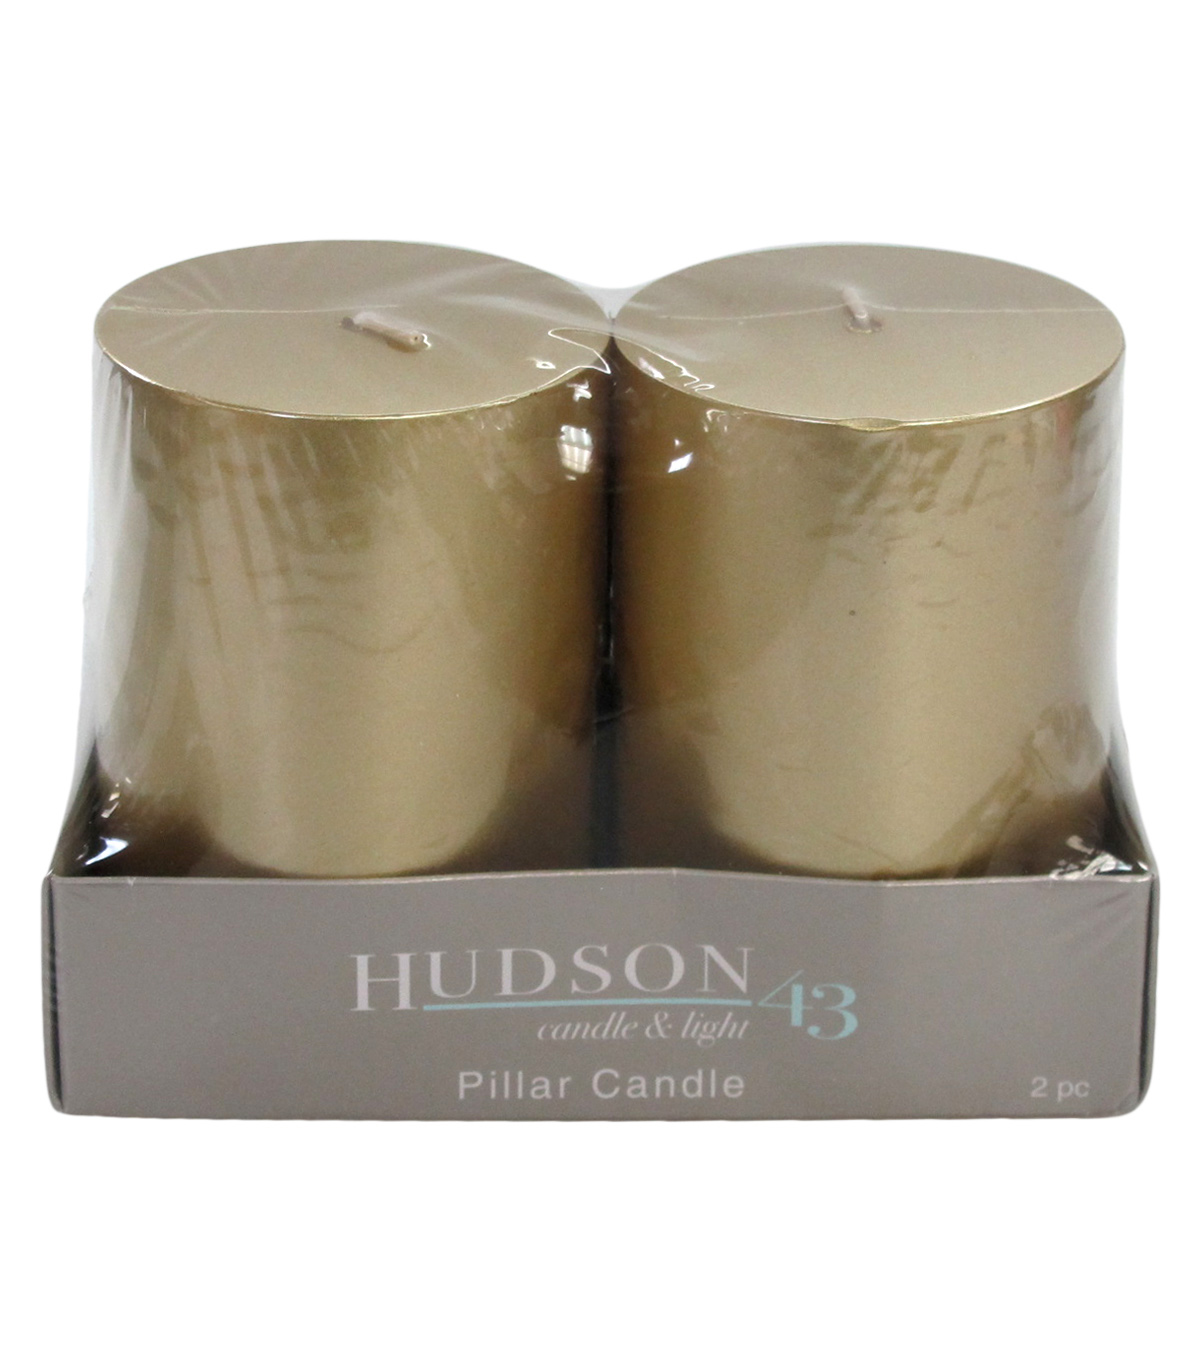 Hudson 43 Candle & Light Collection 2  Pack 3X4 Gold Pillar